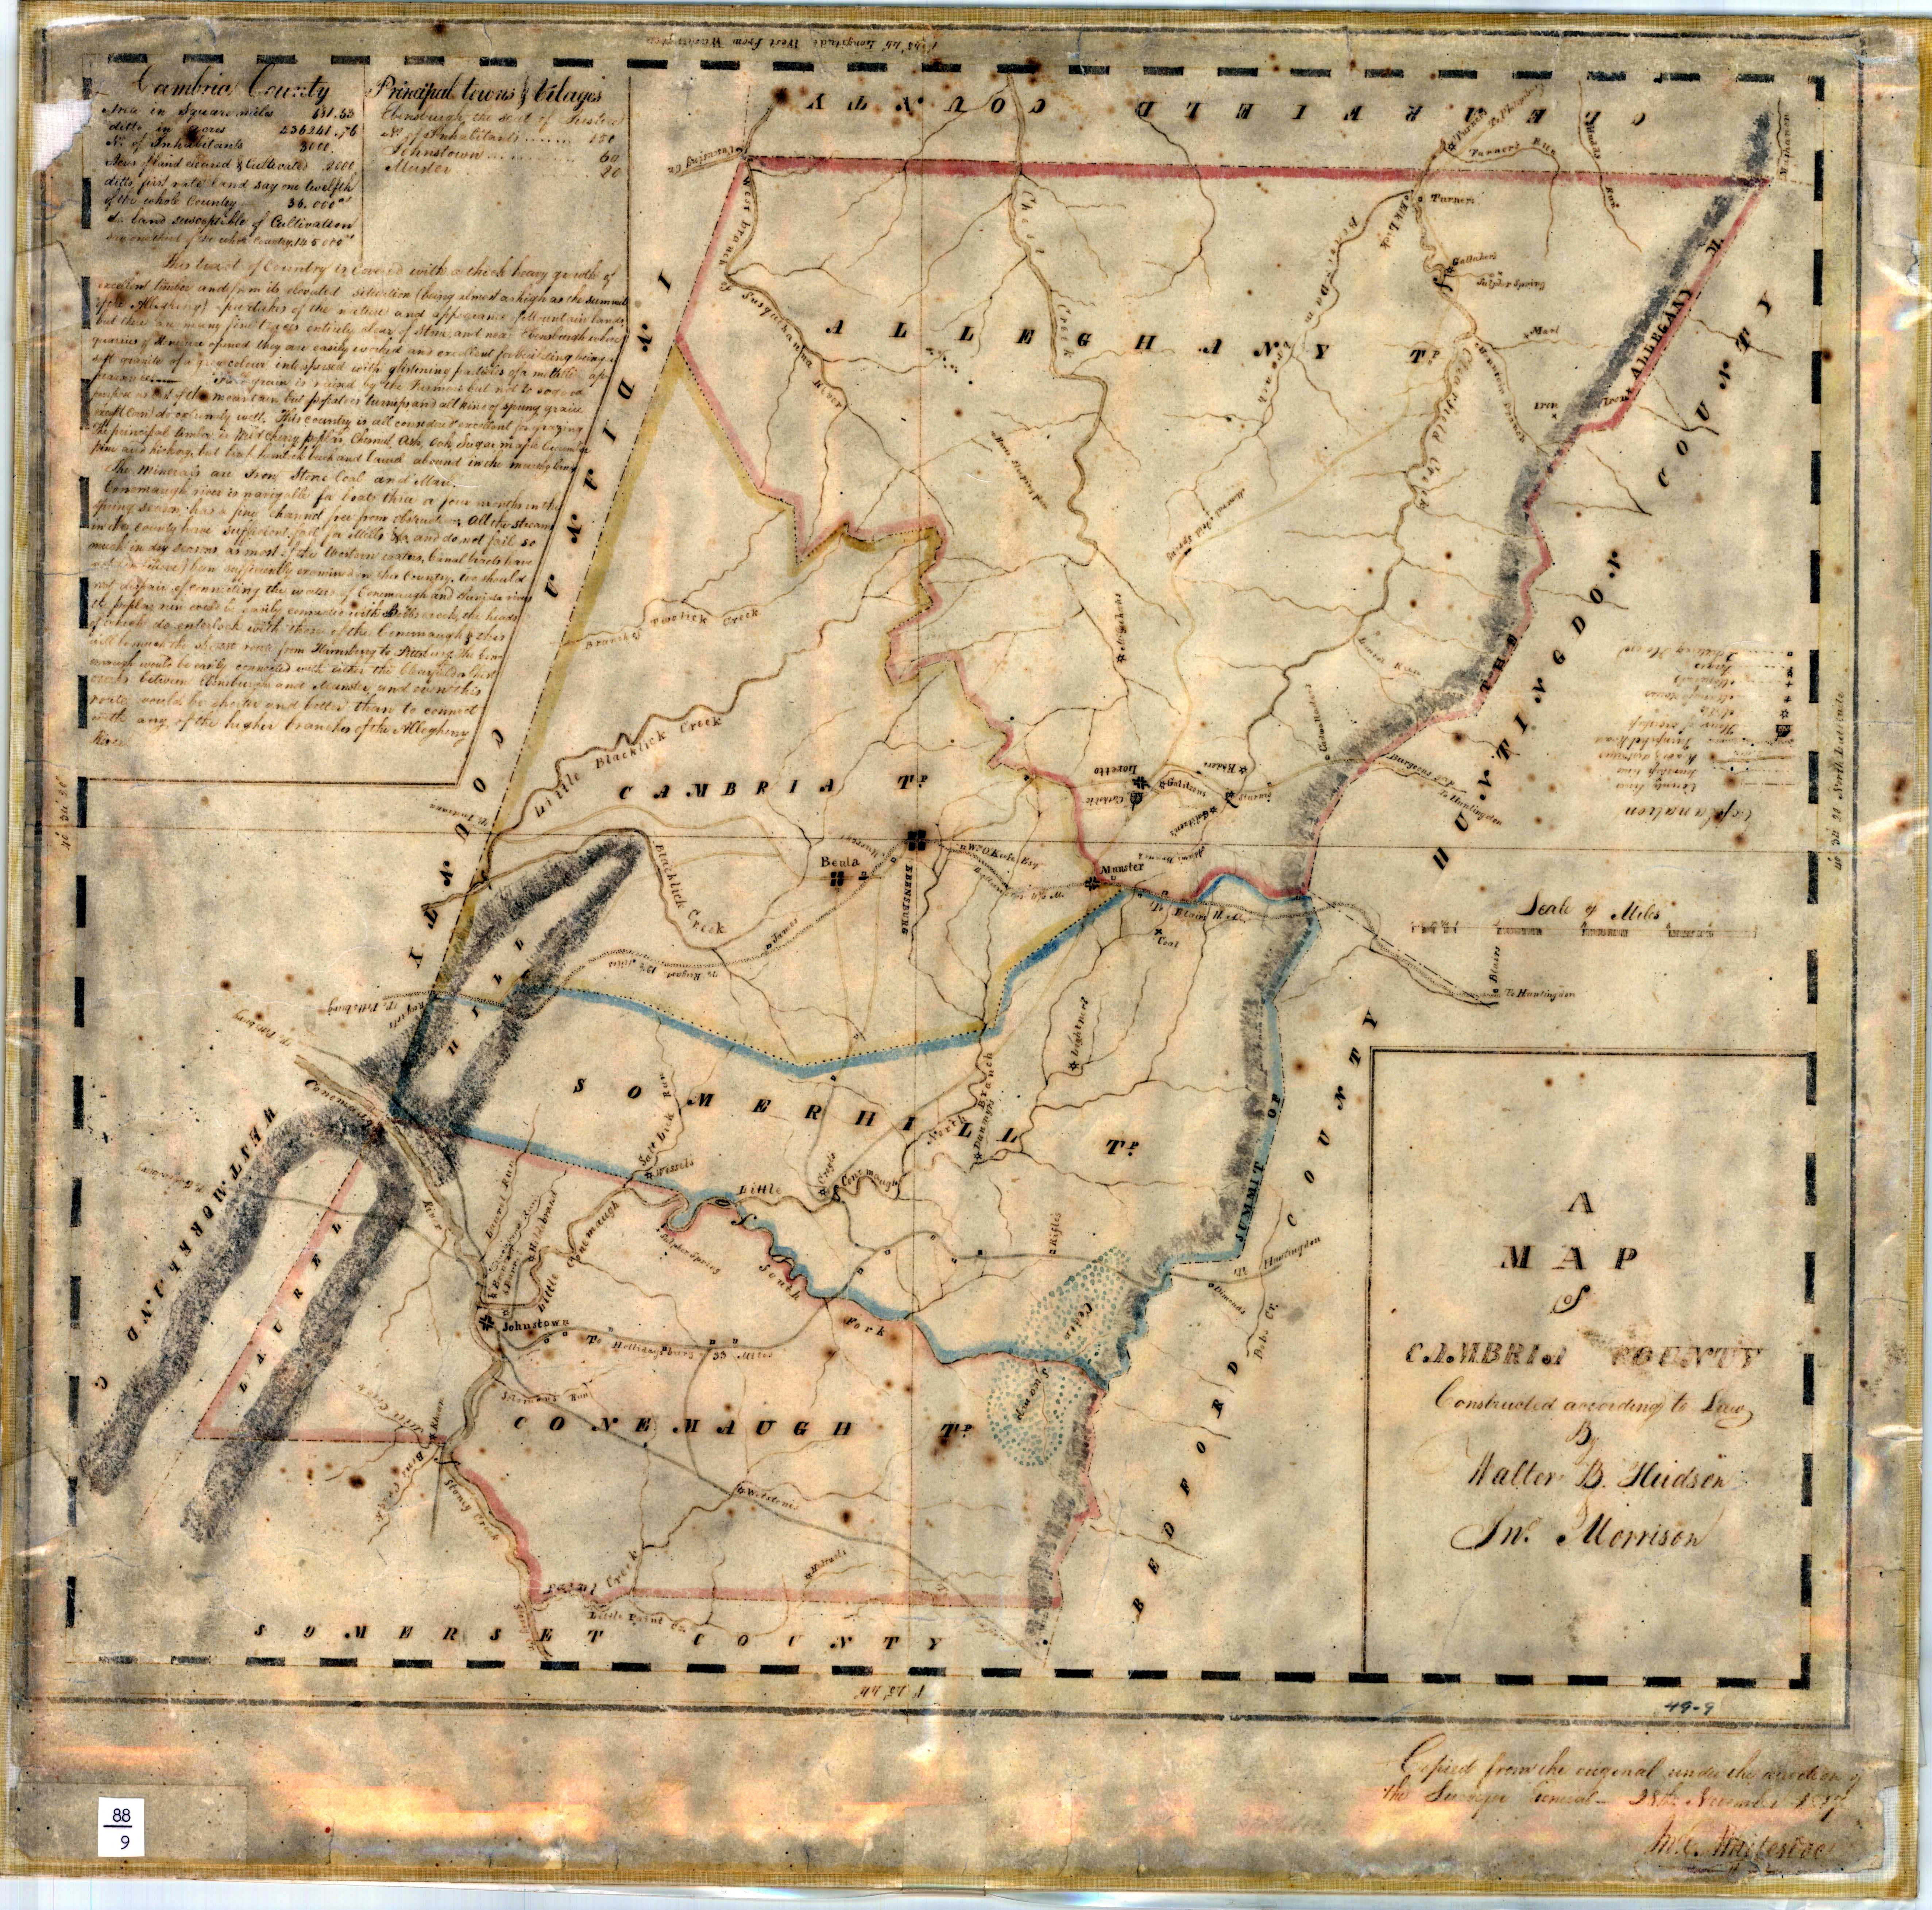 1816 4 The Whiteside Manuscript County Maps Circa 1816 To 1820 To Prepare The 1822 Pennsylvania Map Deputy Surveyors Did Most Of The Work And A Clerk